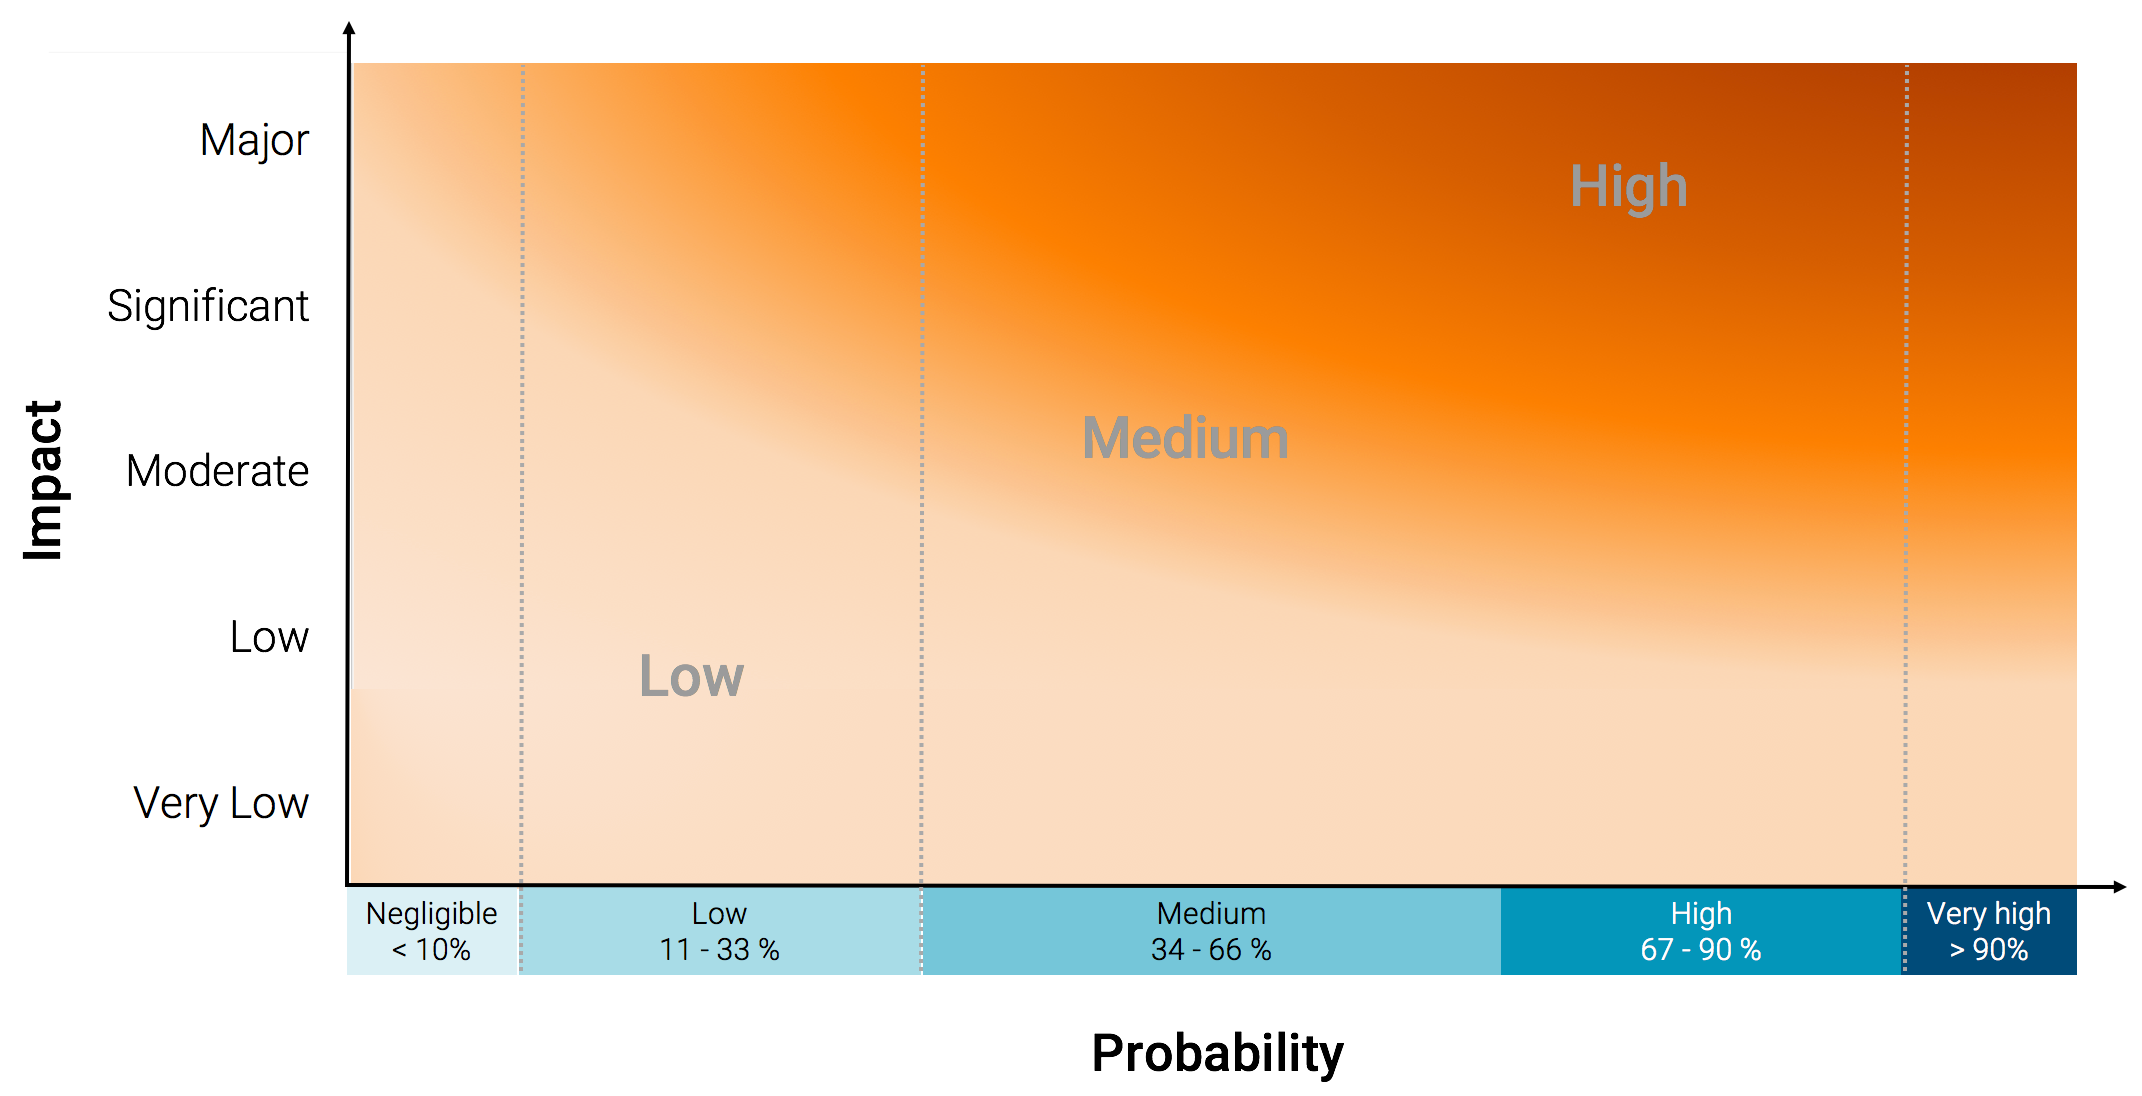 risk_graph_impact_and_probability_update.png